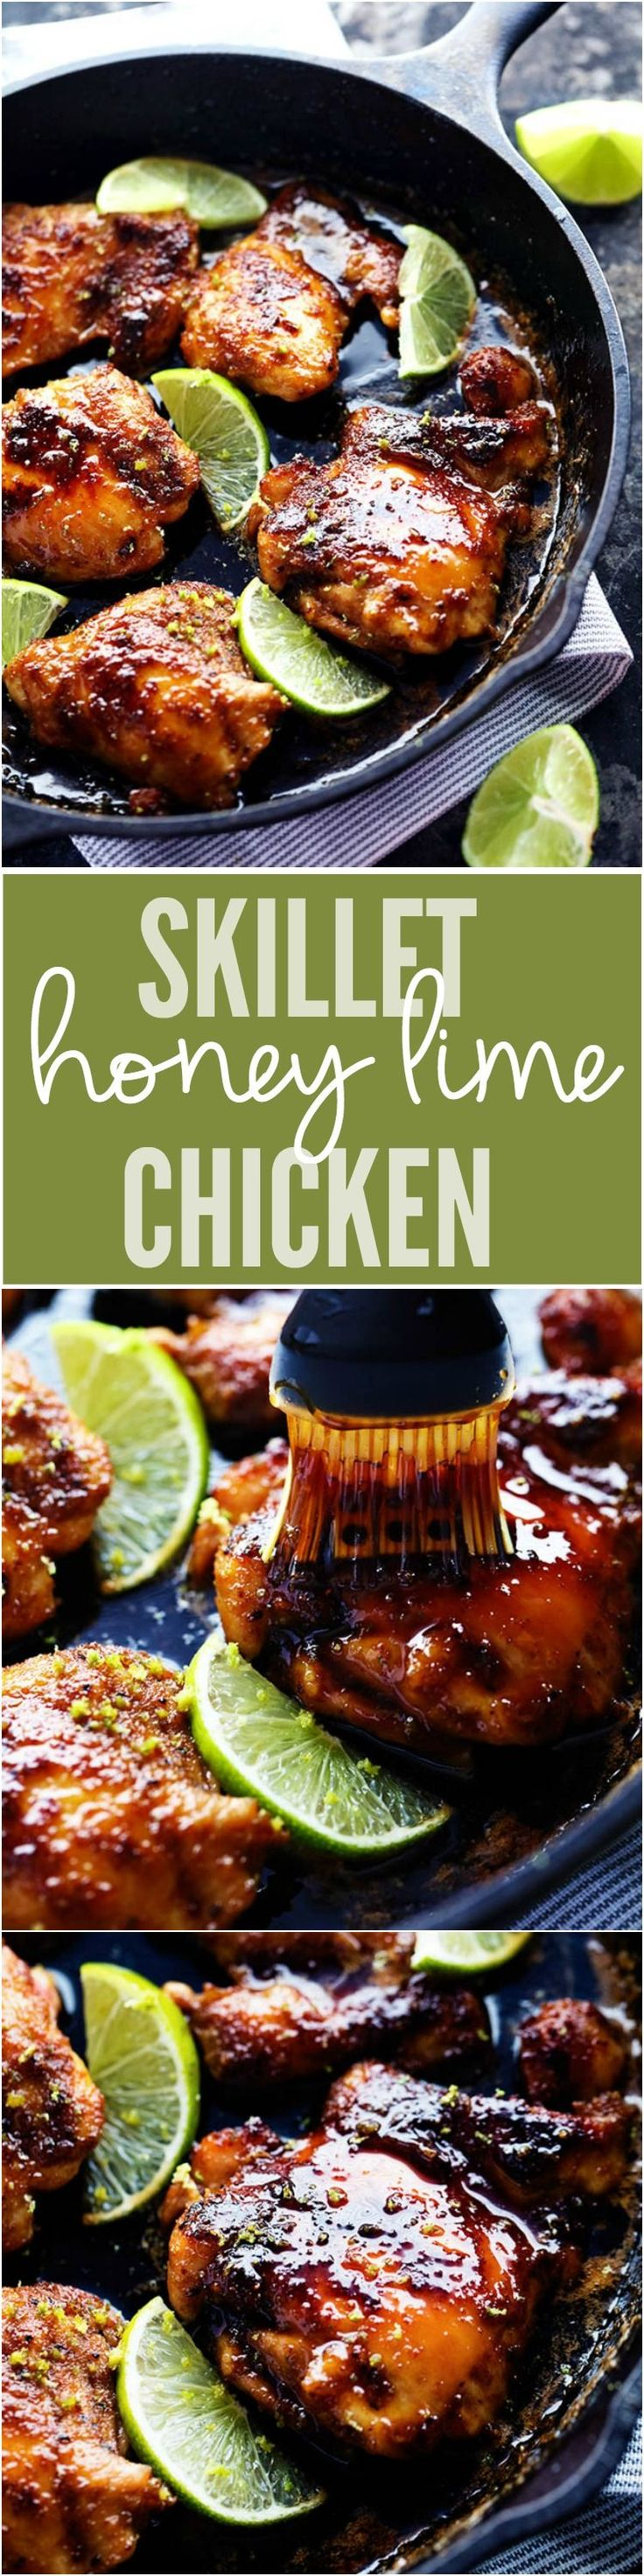 Delicious spiced rubbed chicken cooked to tender and juicy perfection. It gets glazed with the most amazing honey lime sauce and is sure to be a huge hit!